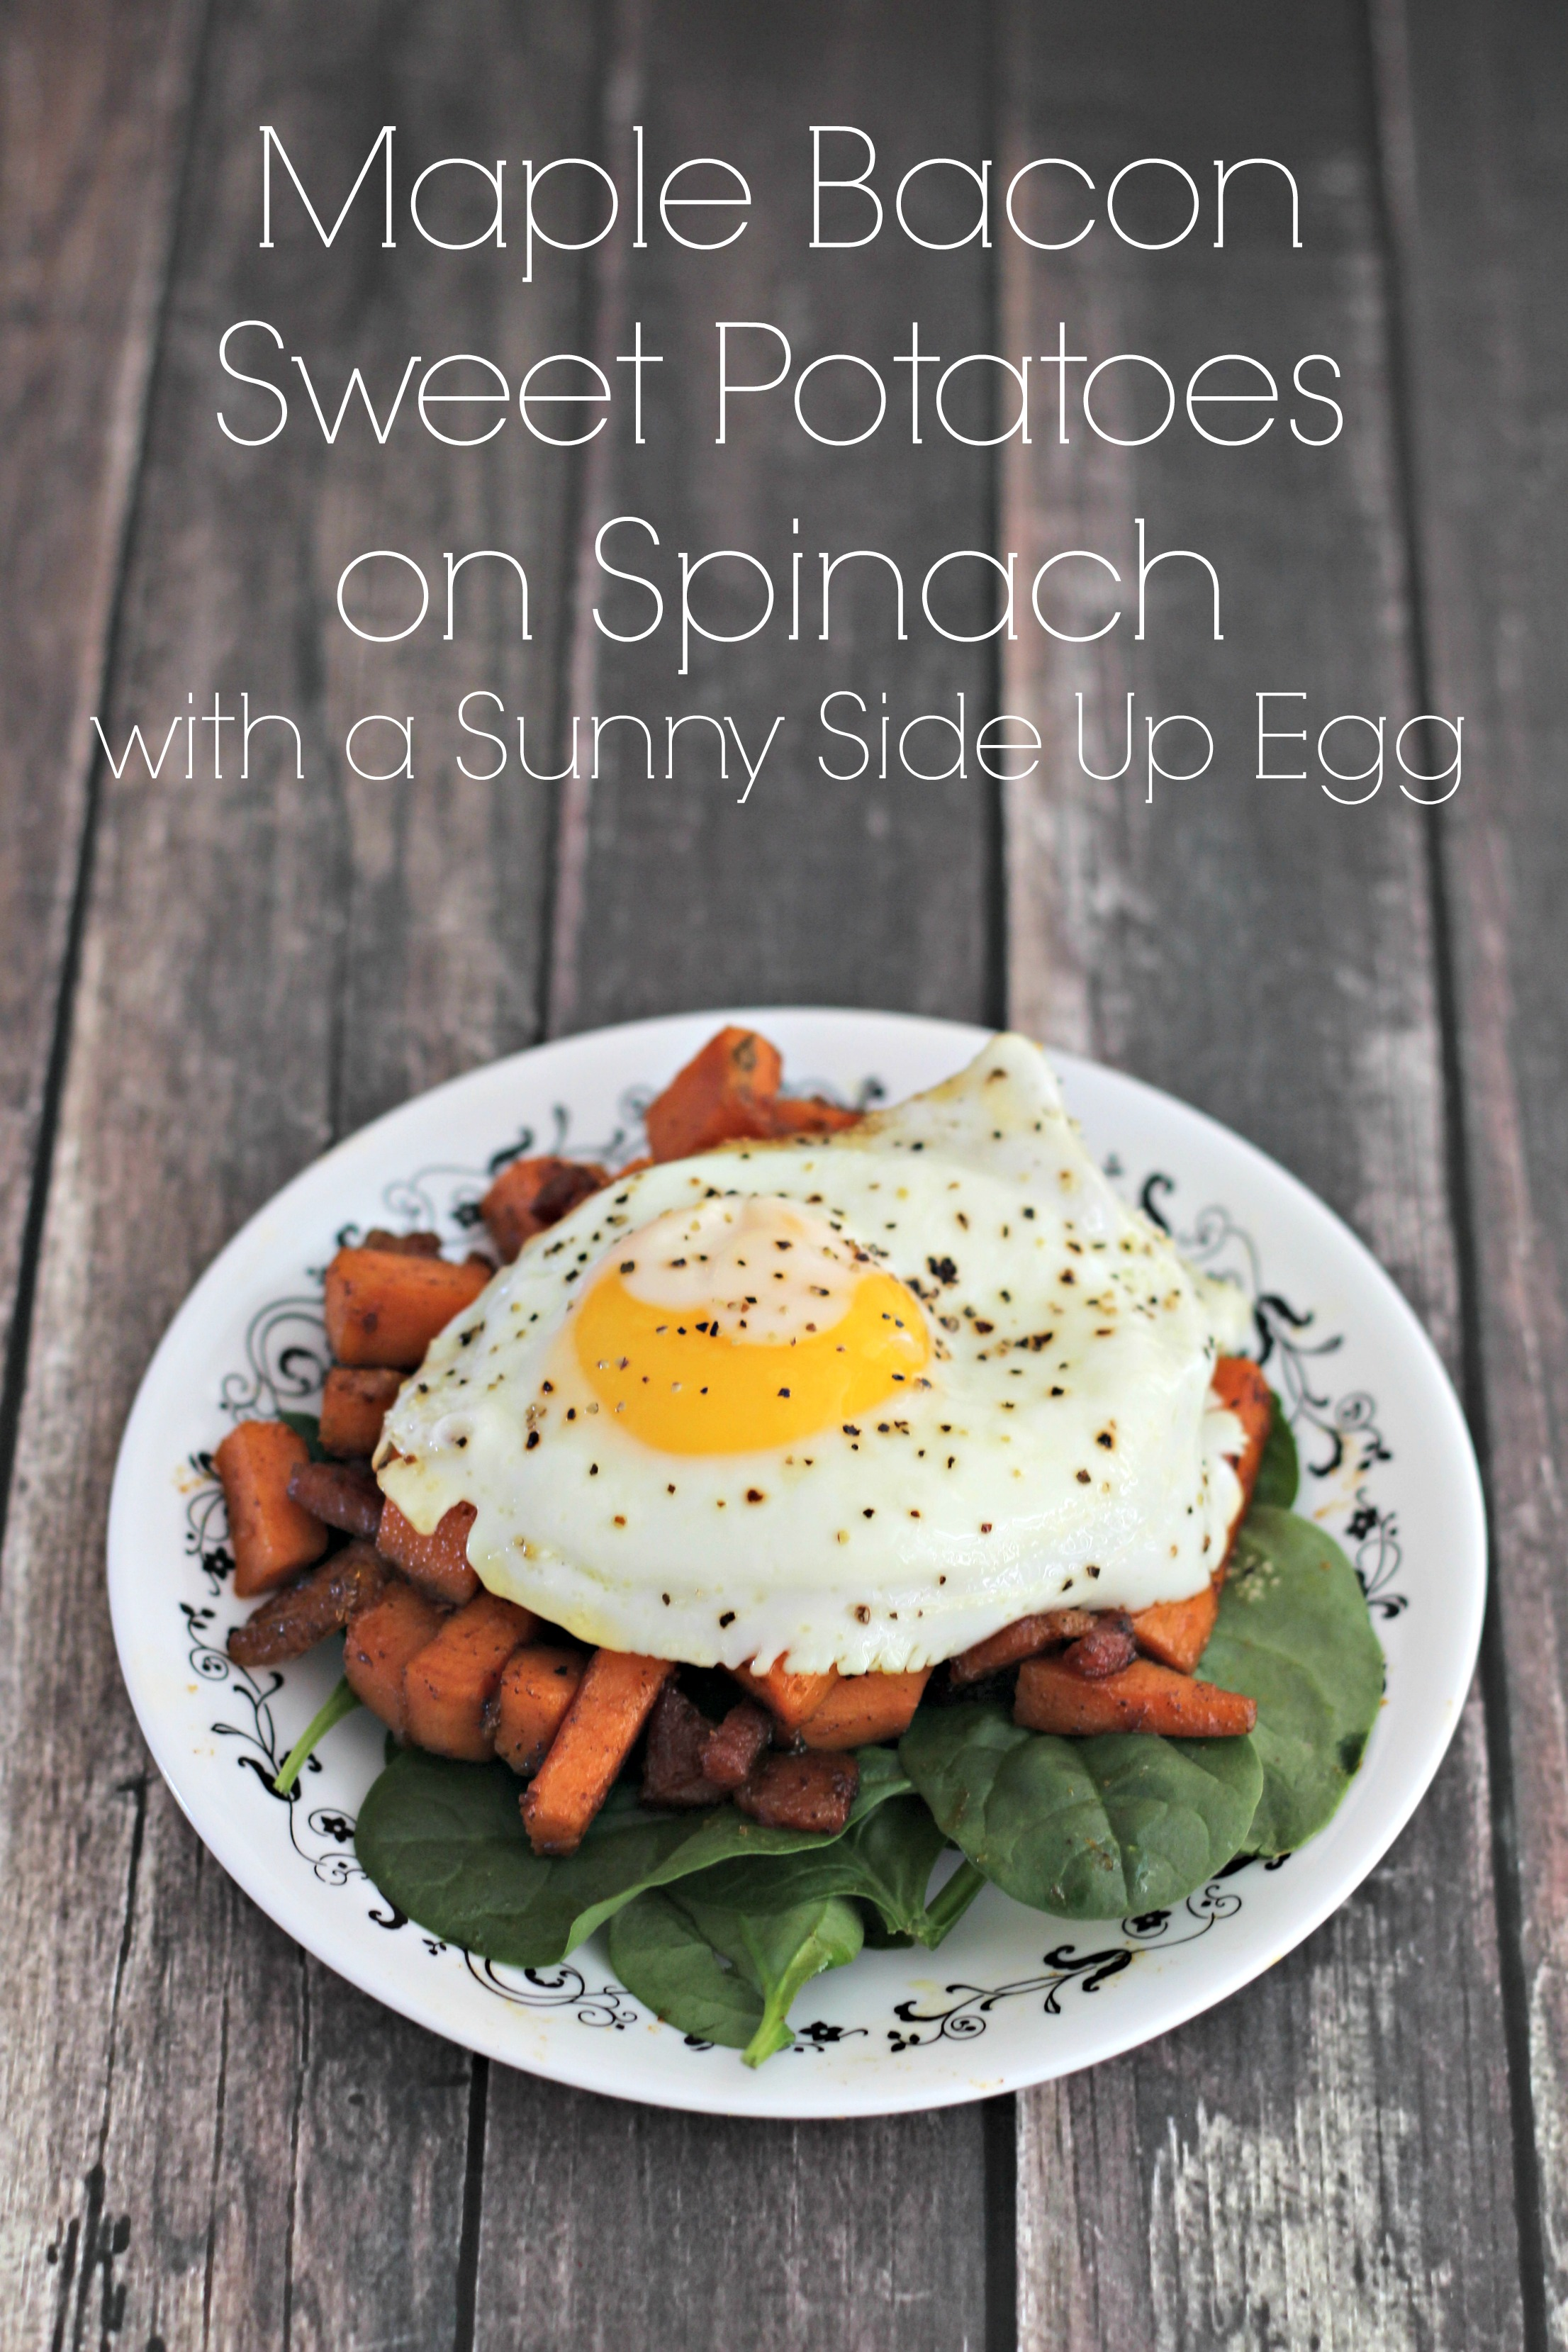 Maple Bacon Sweet Potatoes on Spinach with a Sunny Side Up Egg